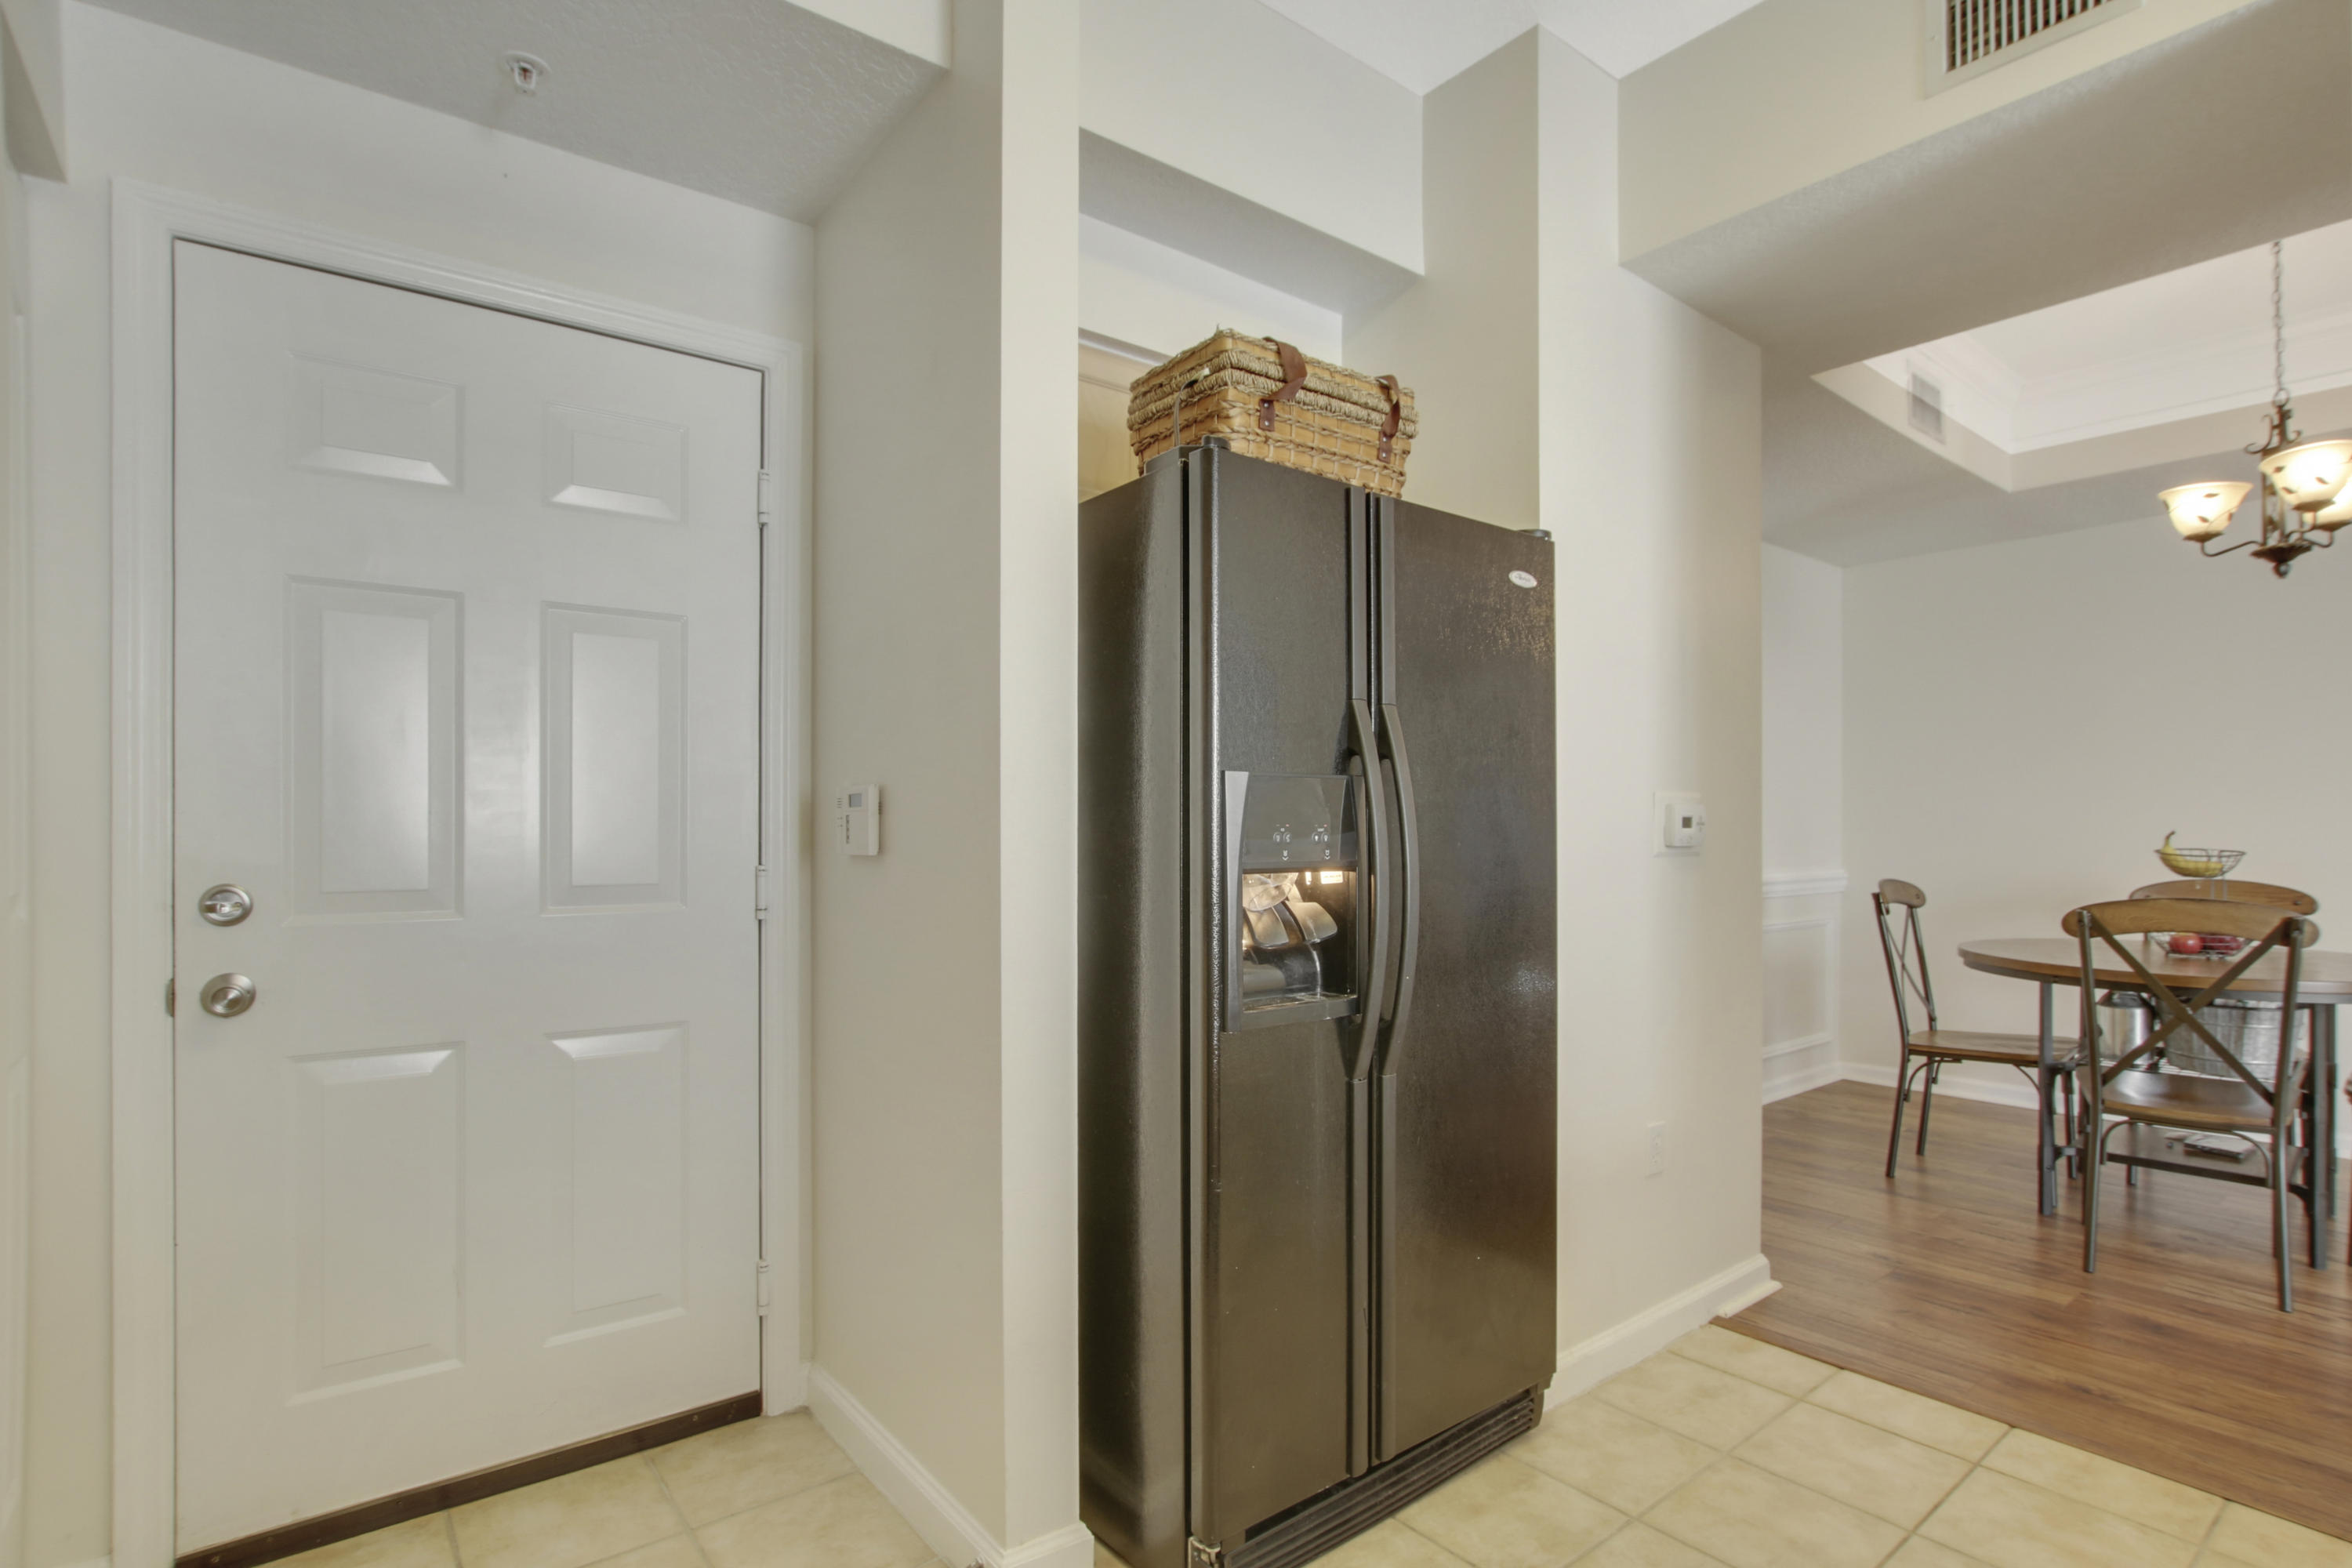 125 Galicia Way 103  - Abacoa Homes - photo 7